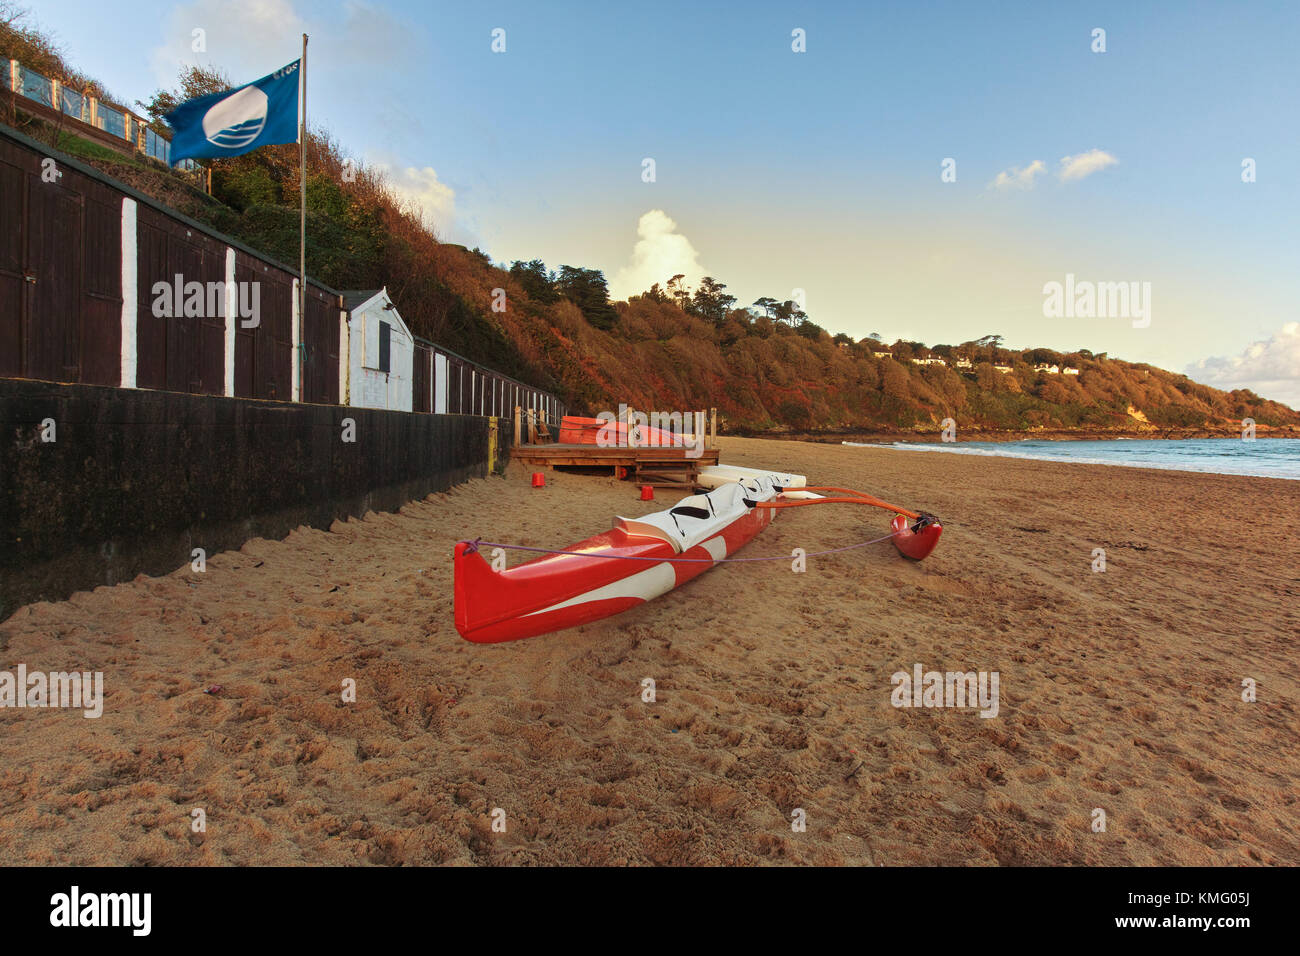 An outrigger boat lying on the beach at Carbis Bay near St Ives in Cornwall, South East England. - Stock Image